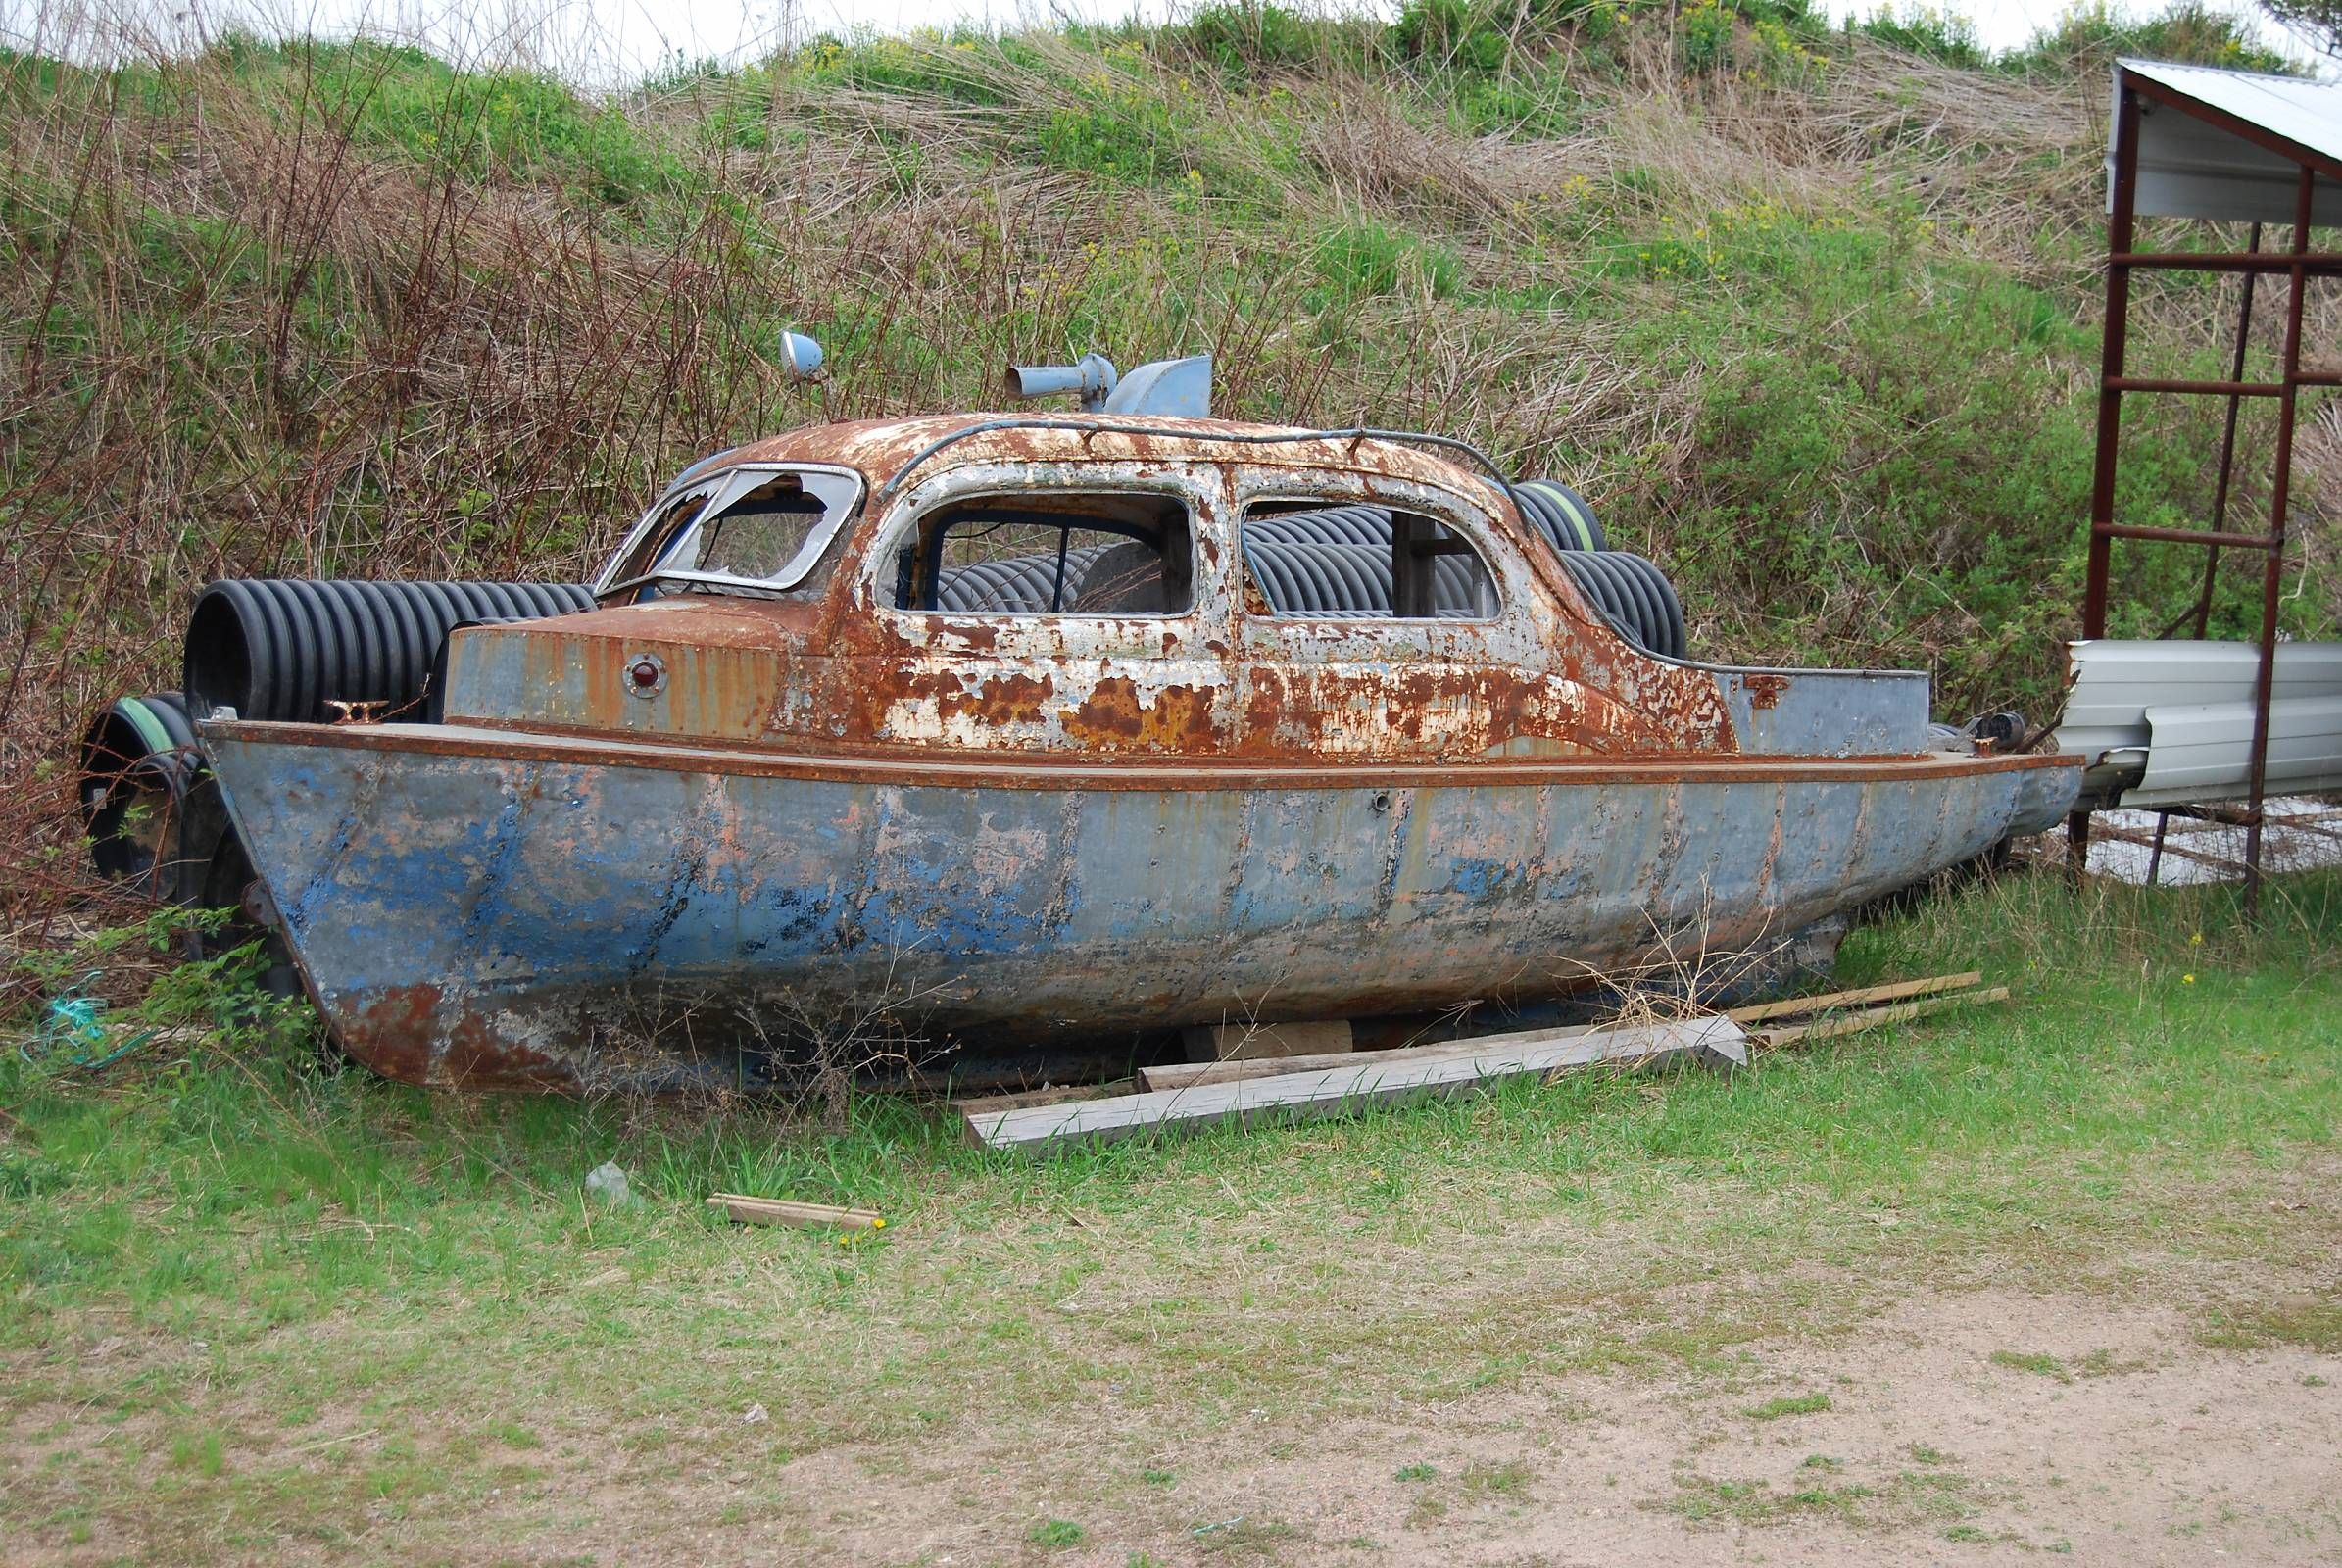 Boat with a car body for a cabin... | Other Things With Wheels, or Wings, or... | Vintage boats ...